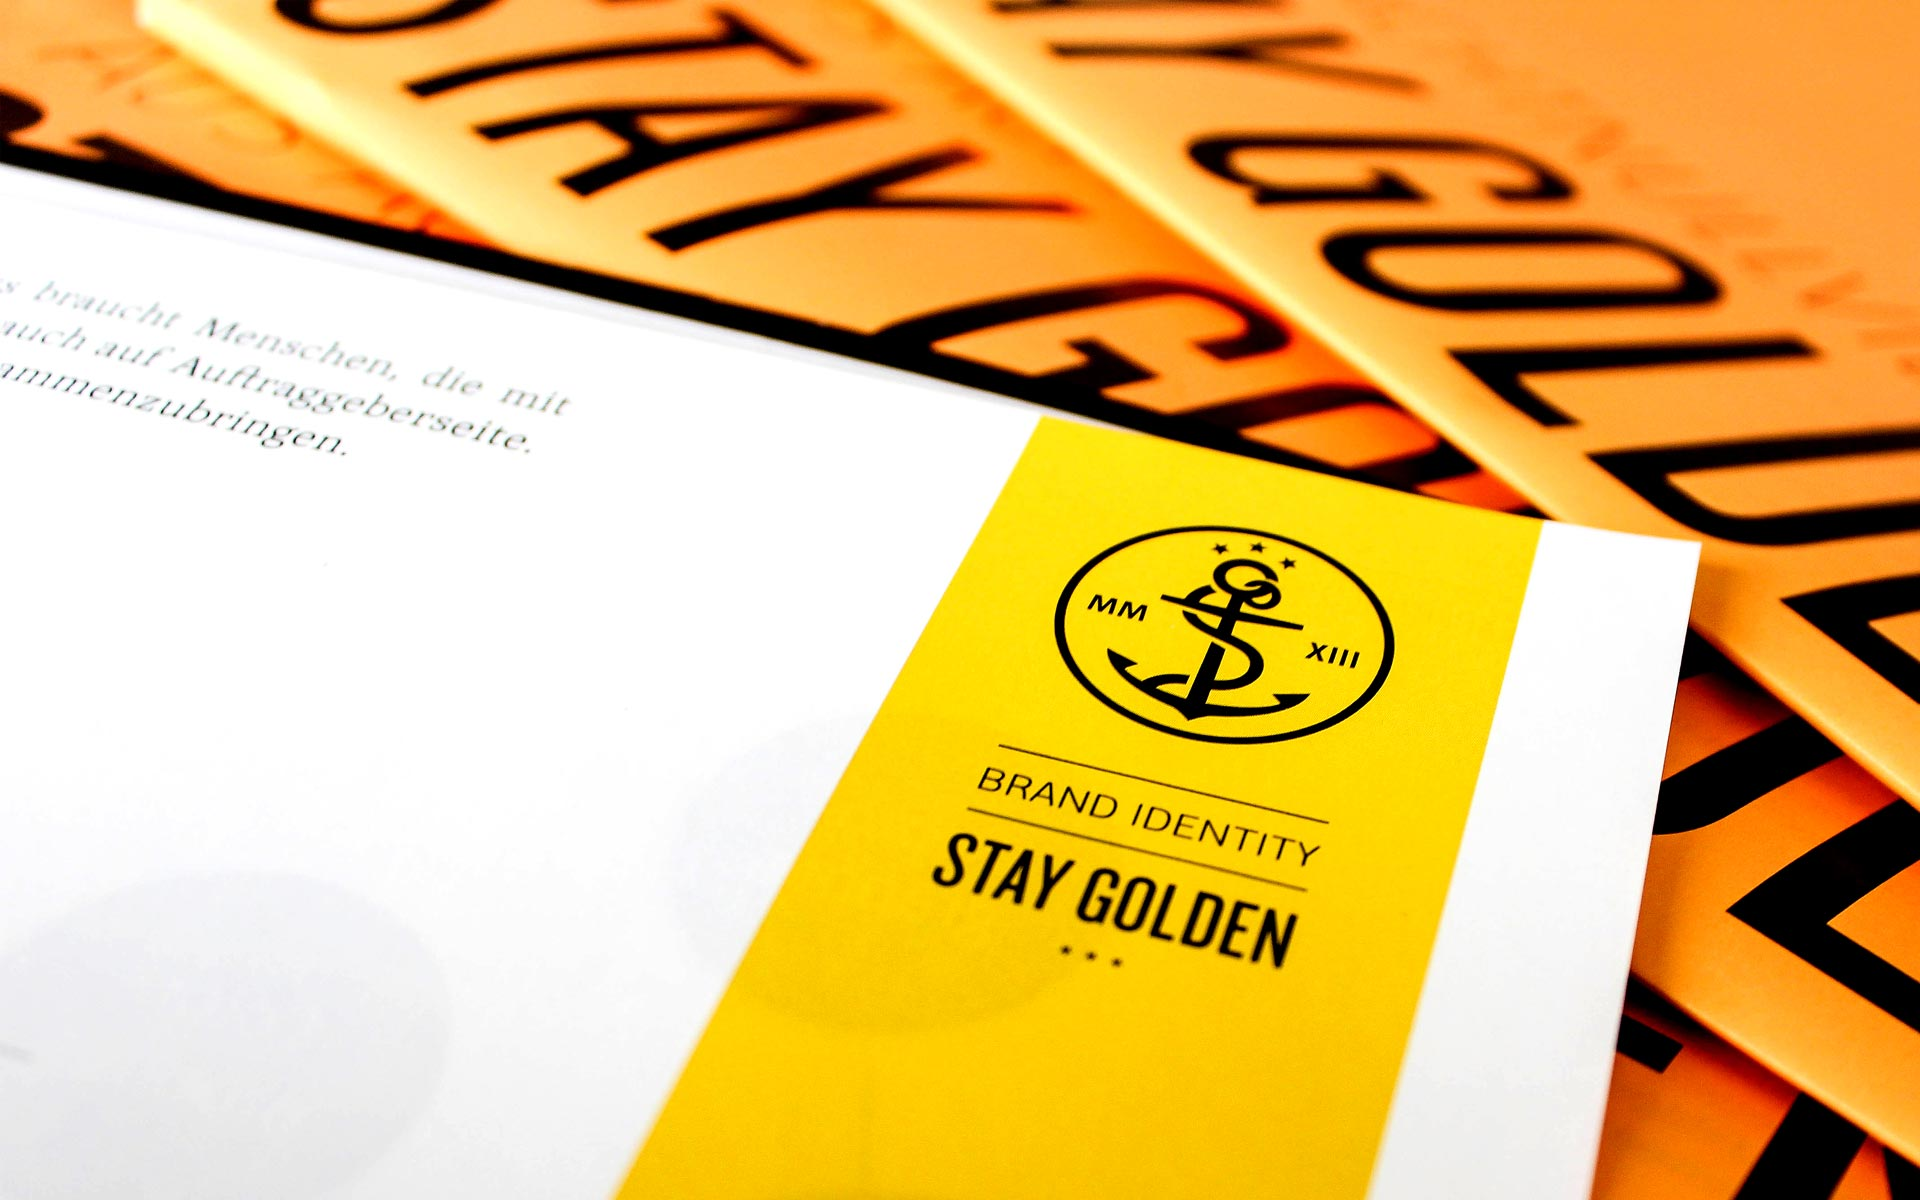 stay golden Brand Identity, Corporate Design, Newsletter